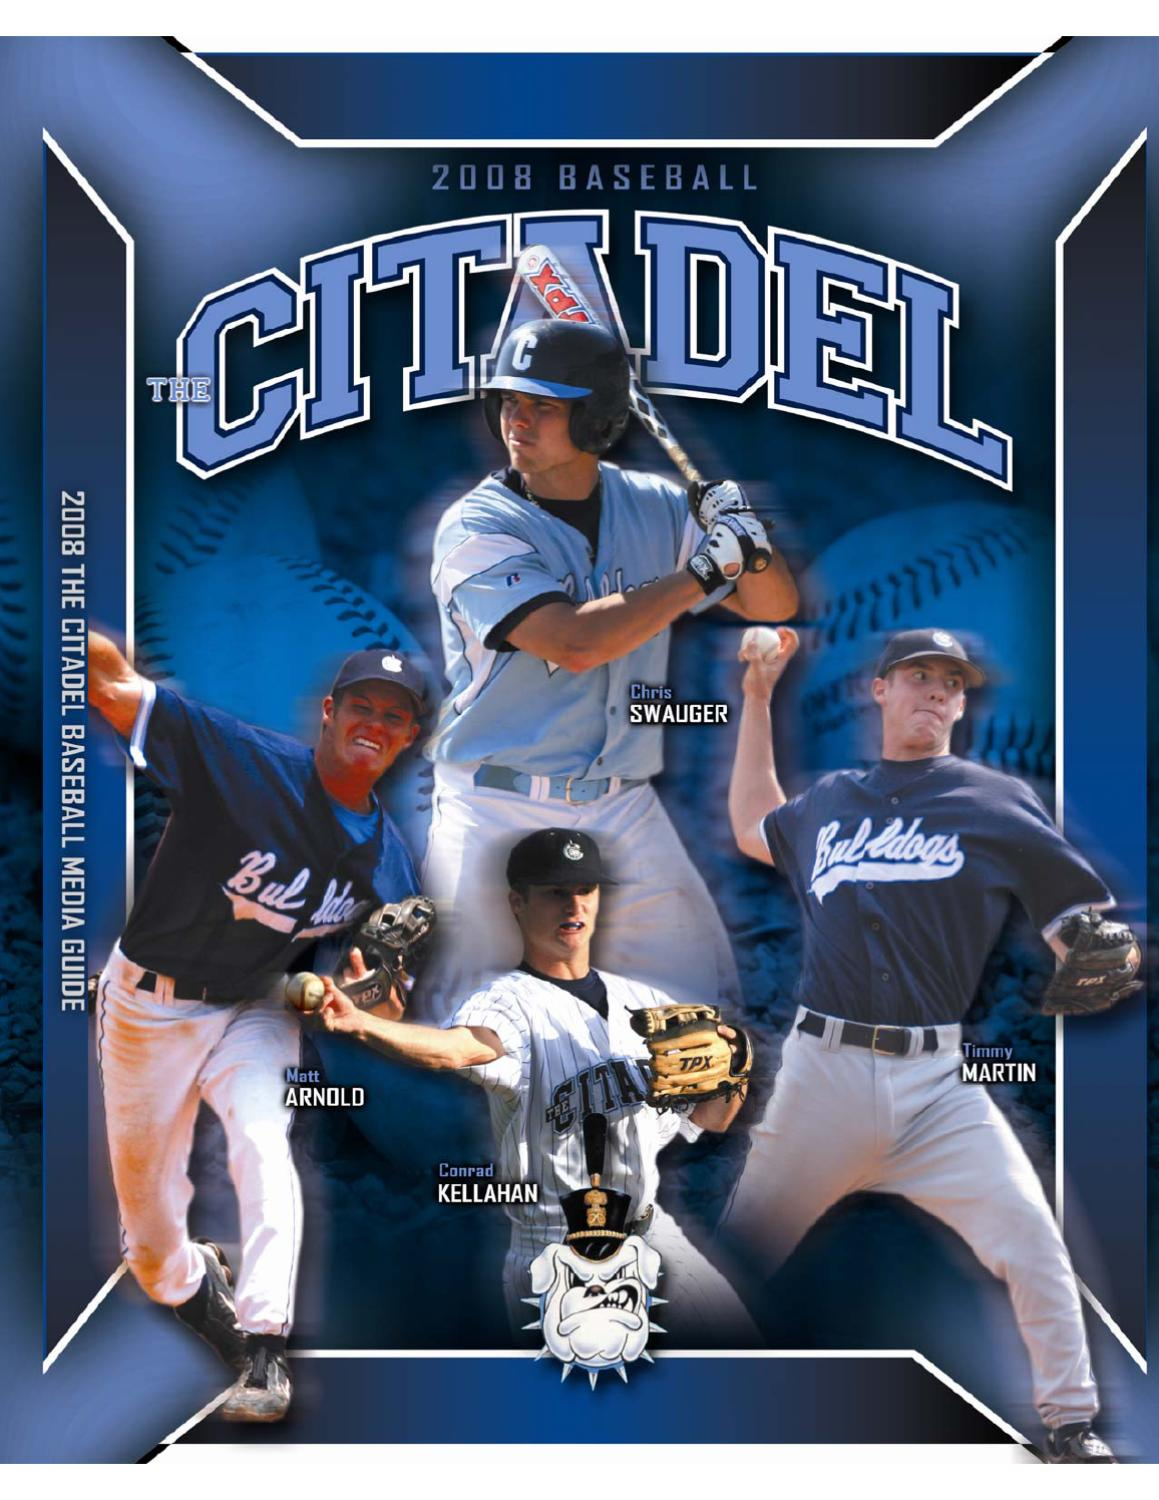 bad93b190aa91 2008 Baseball Media Guide by Jon Cole - issuu